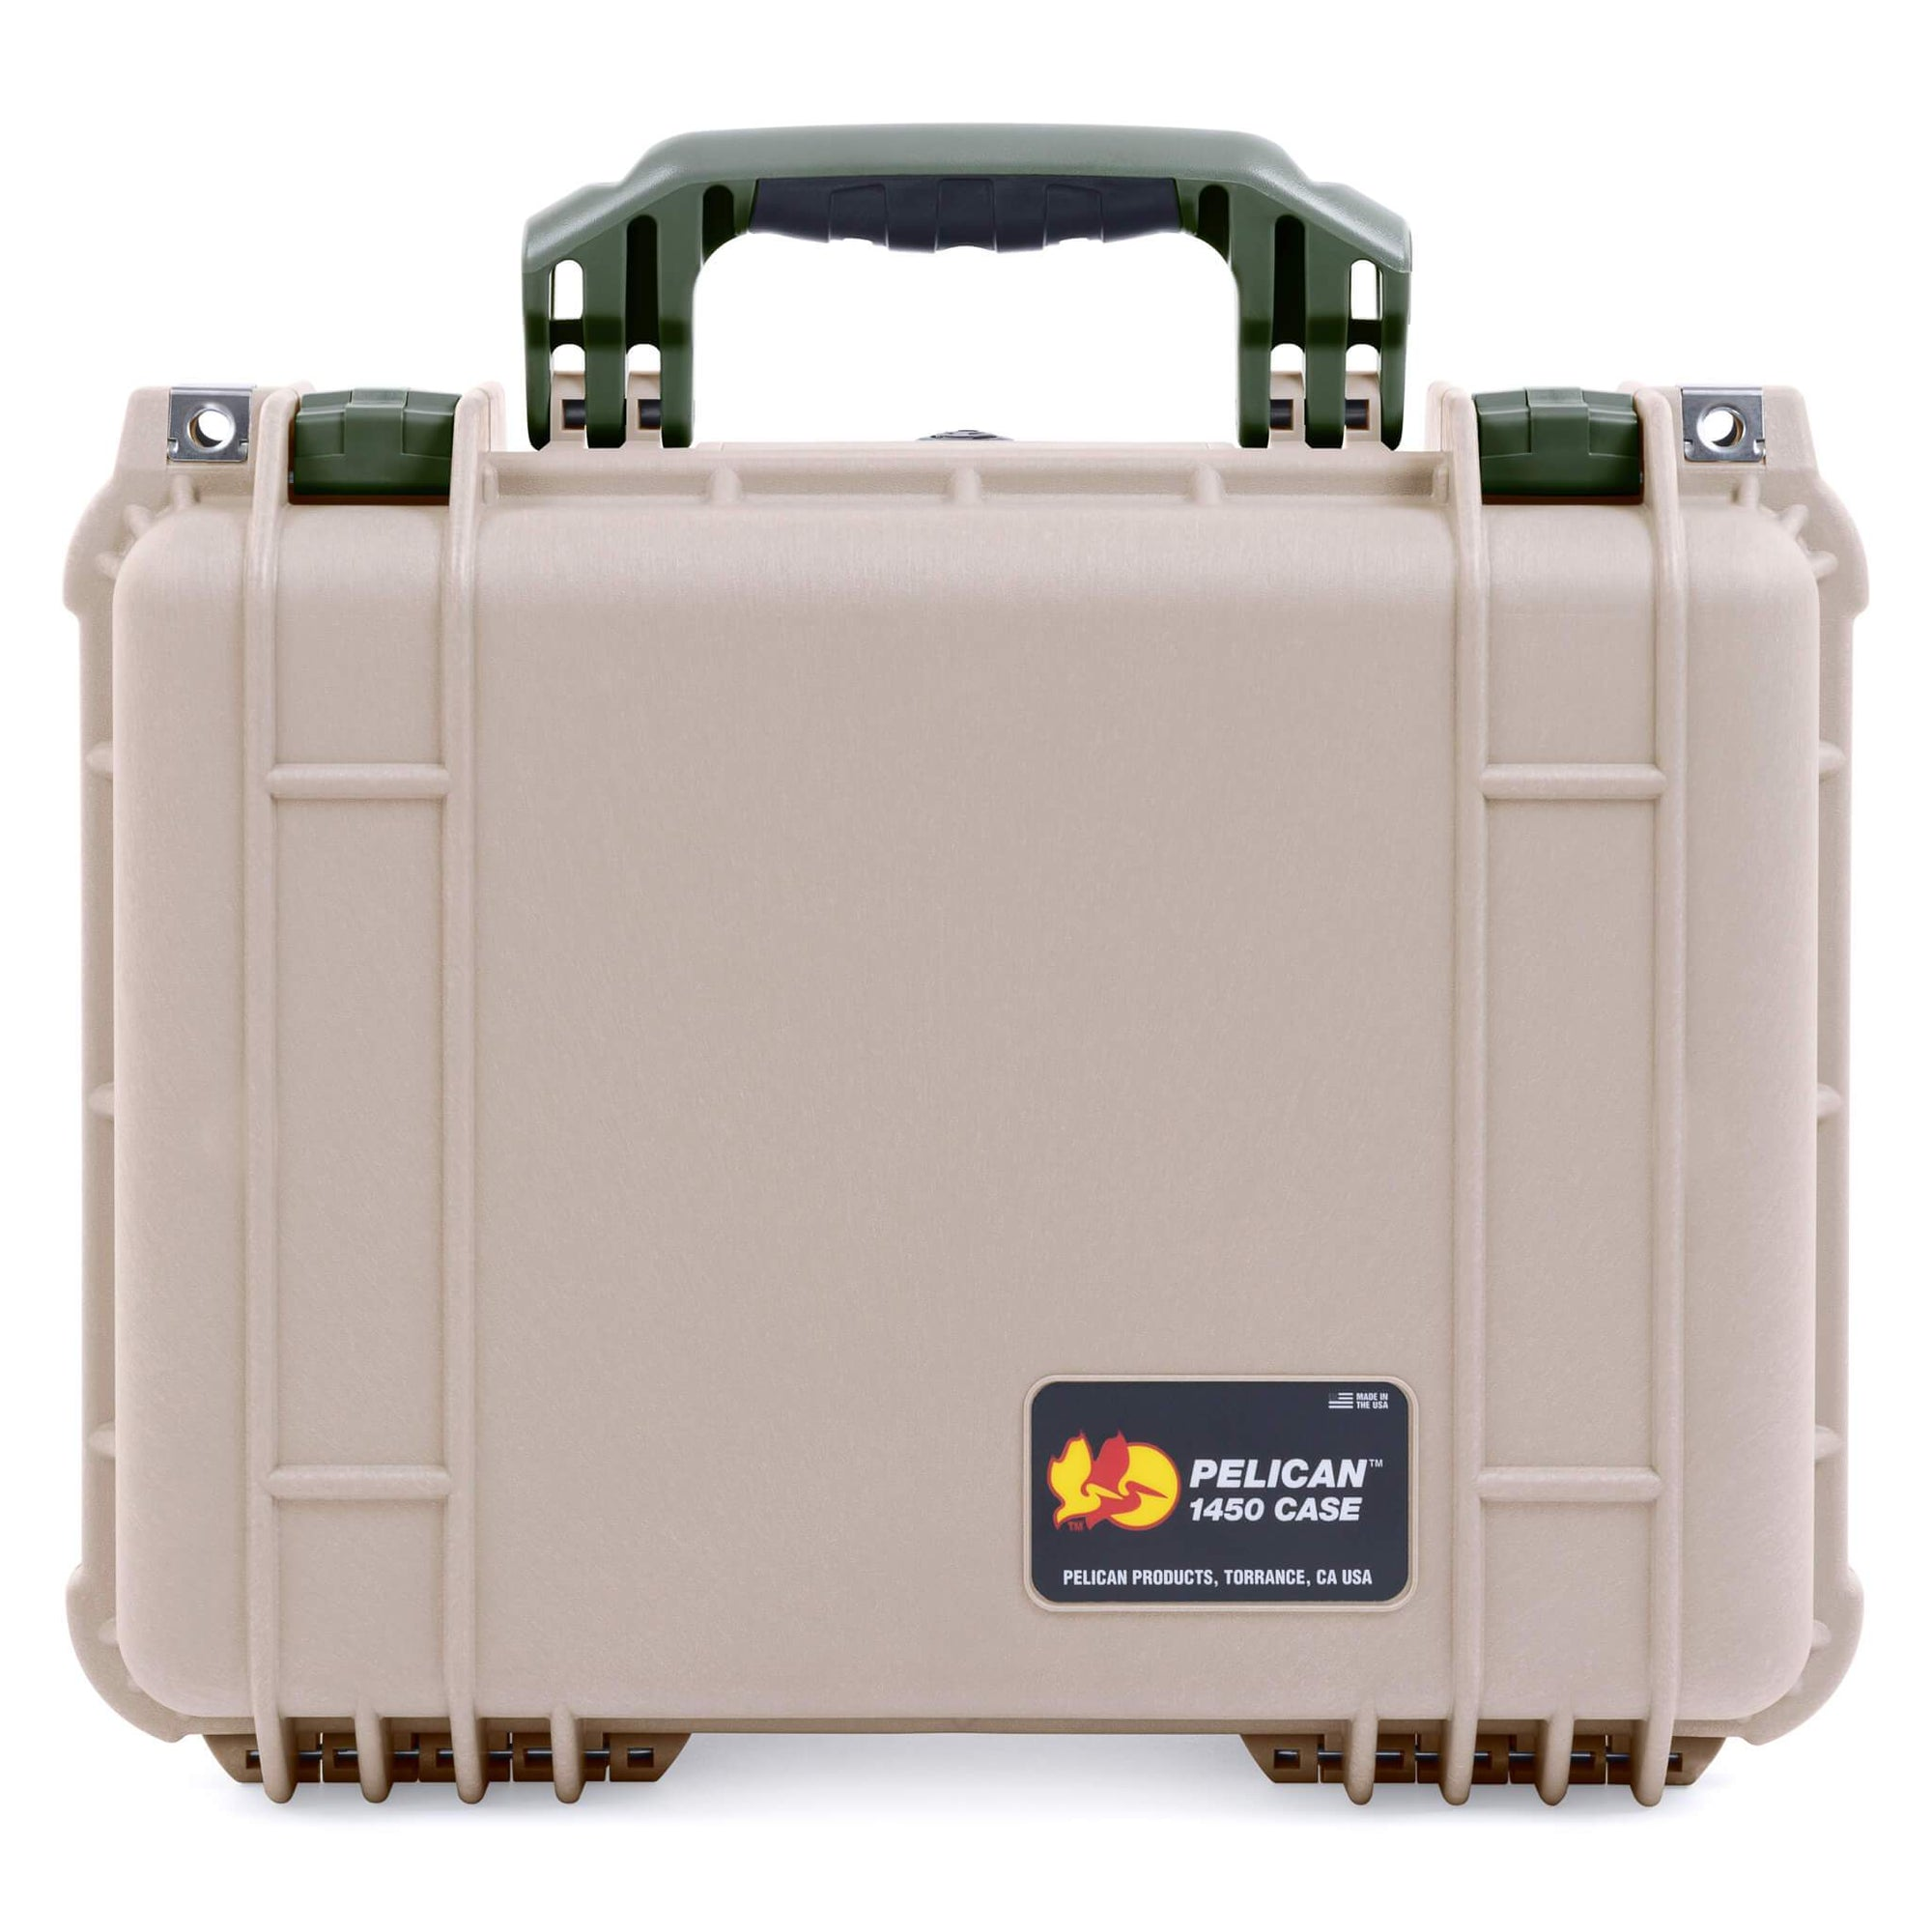 Pelican 1450 Case, Desert Tan with OD Green Handle & Latches